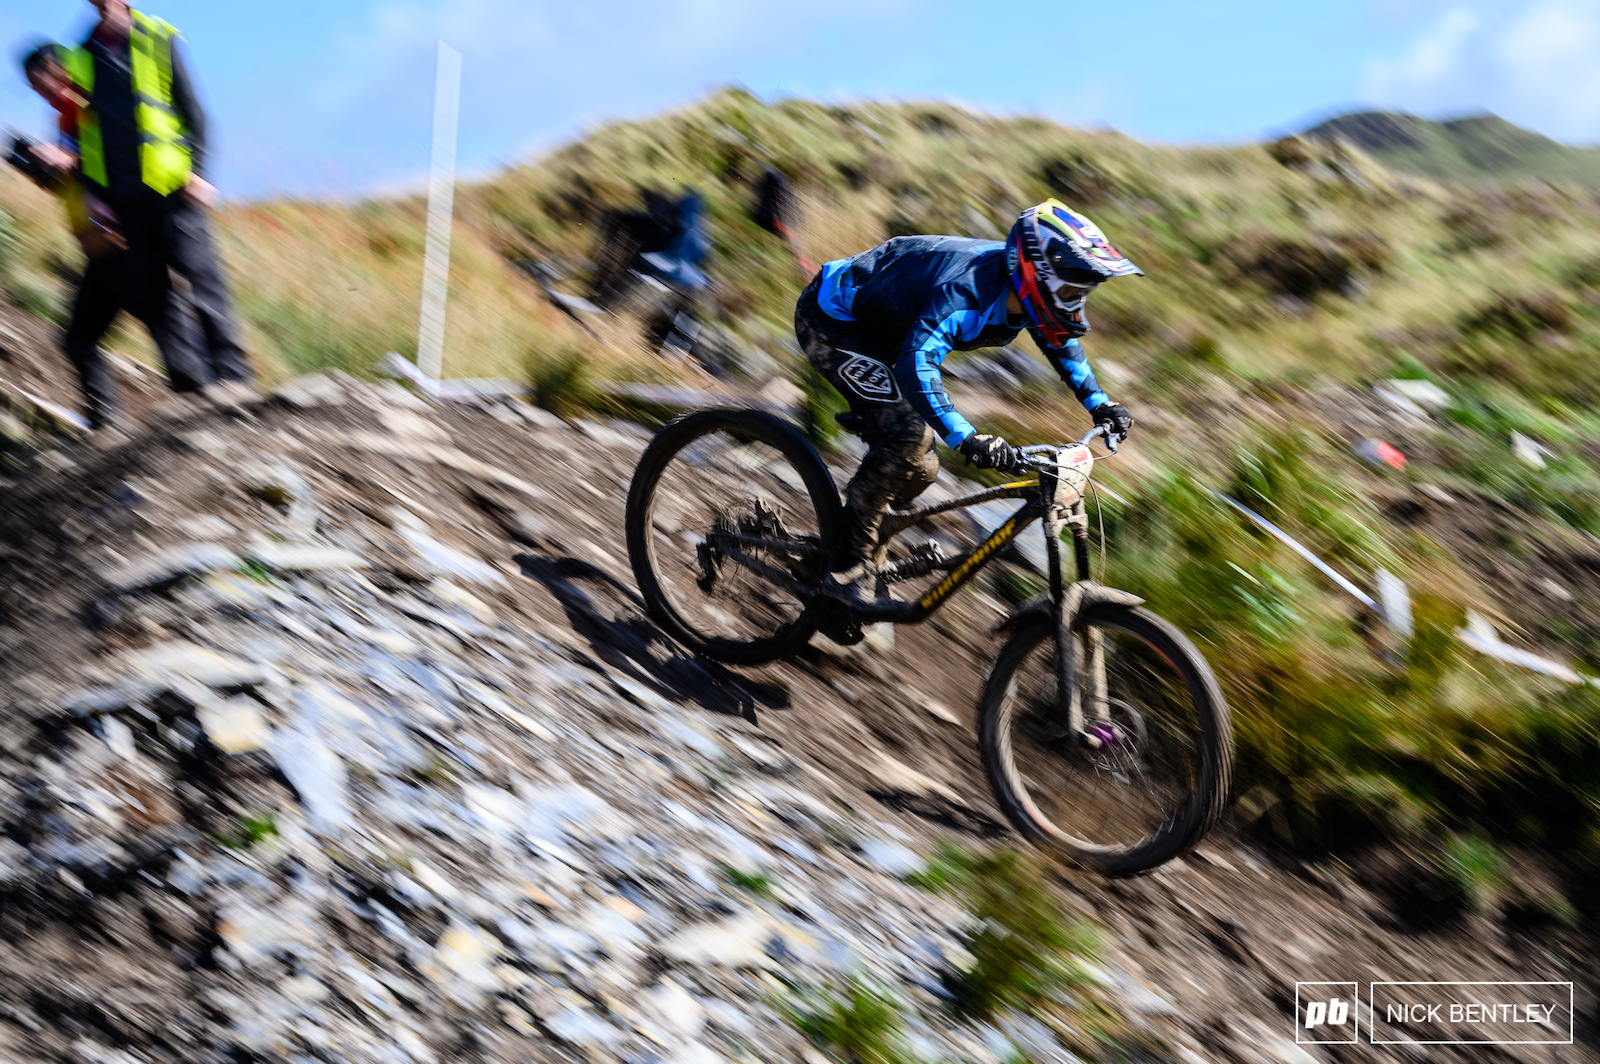 The steep chute midway down the track seemed a little bit more tame in the dry